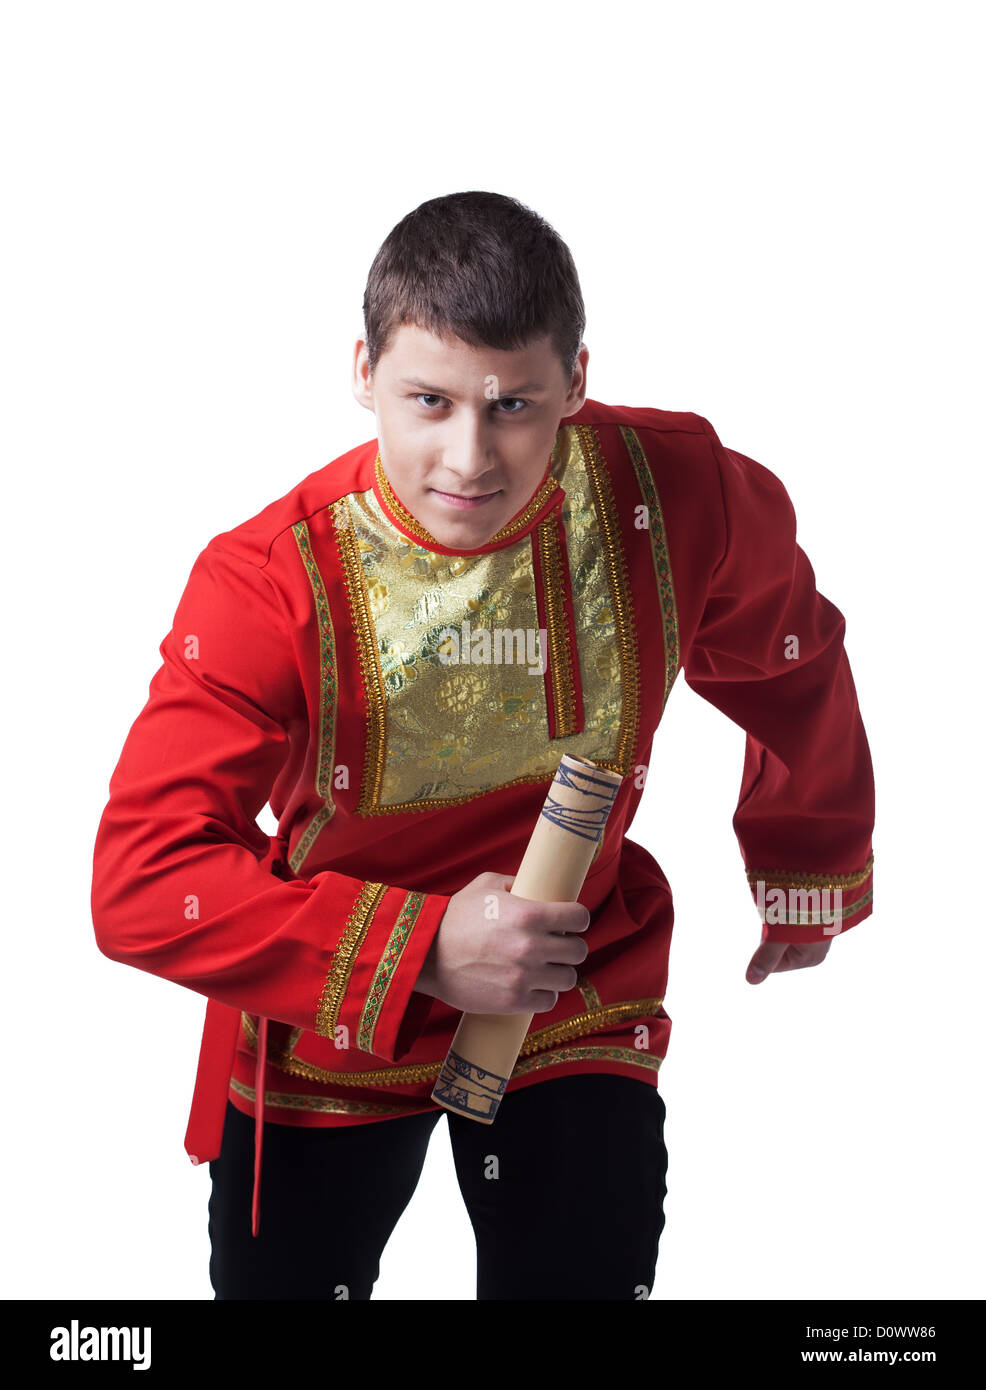 Dancer in russian costume with message - Stock Image